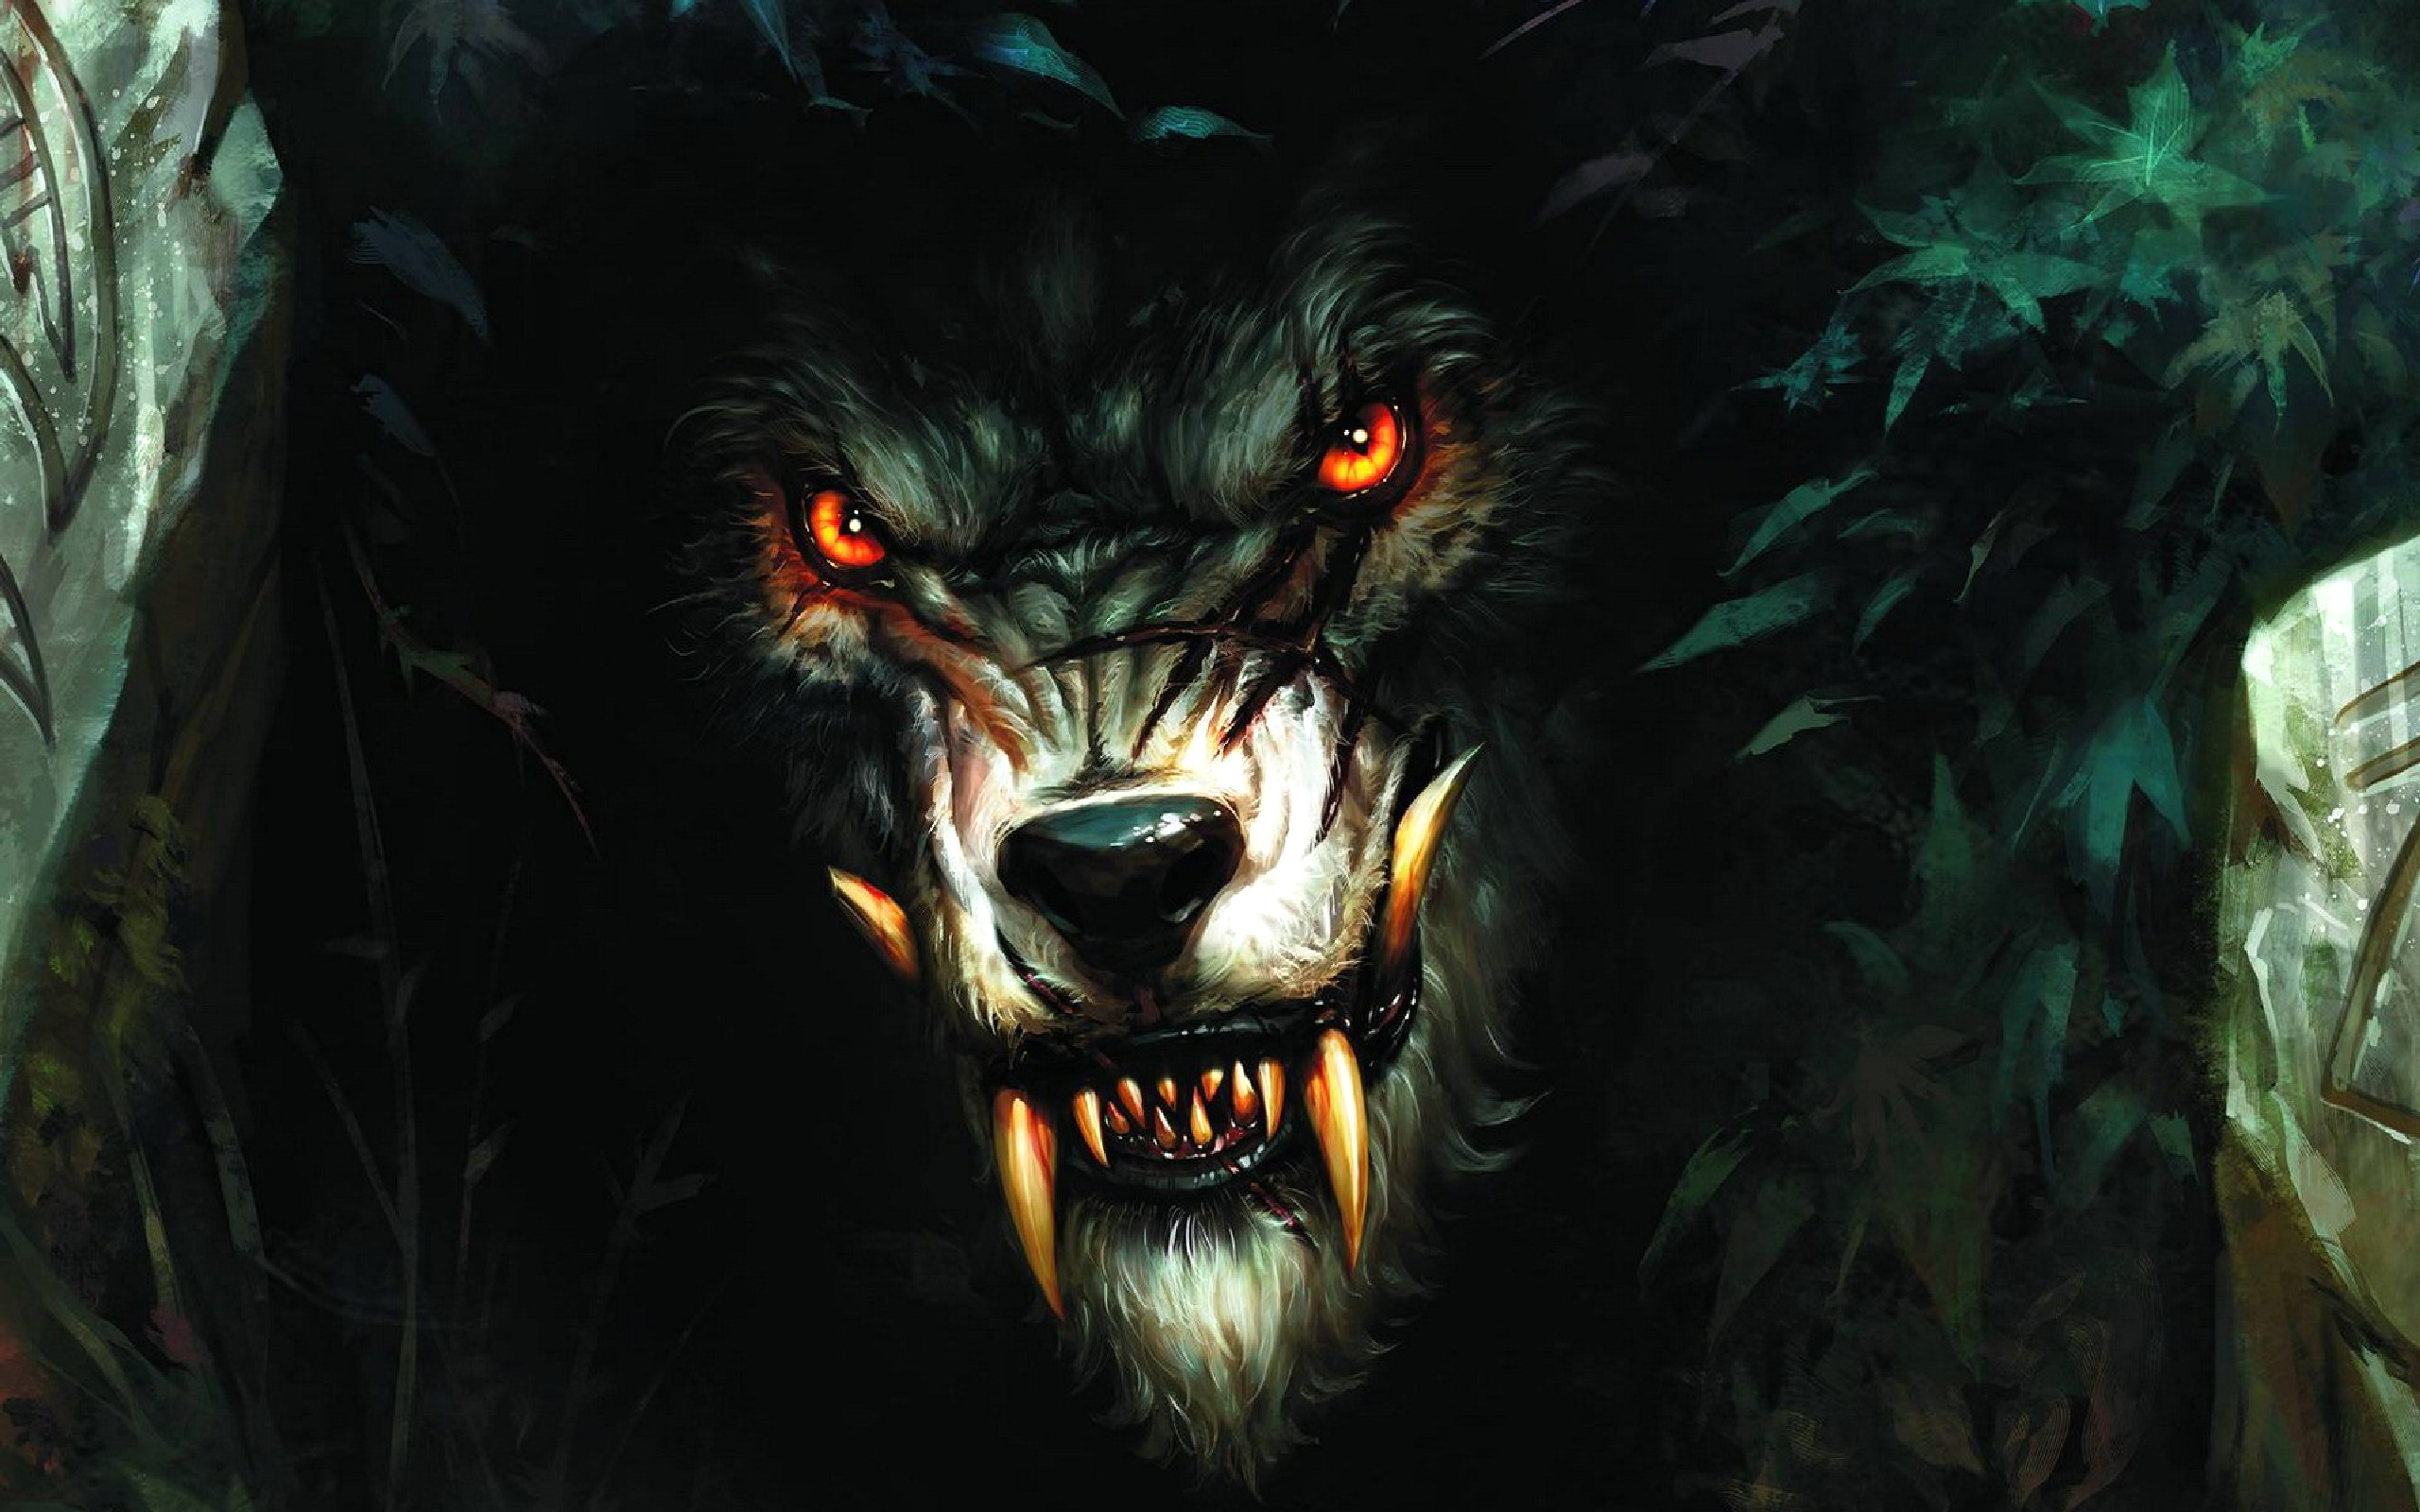 Werewolf artwork